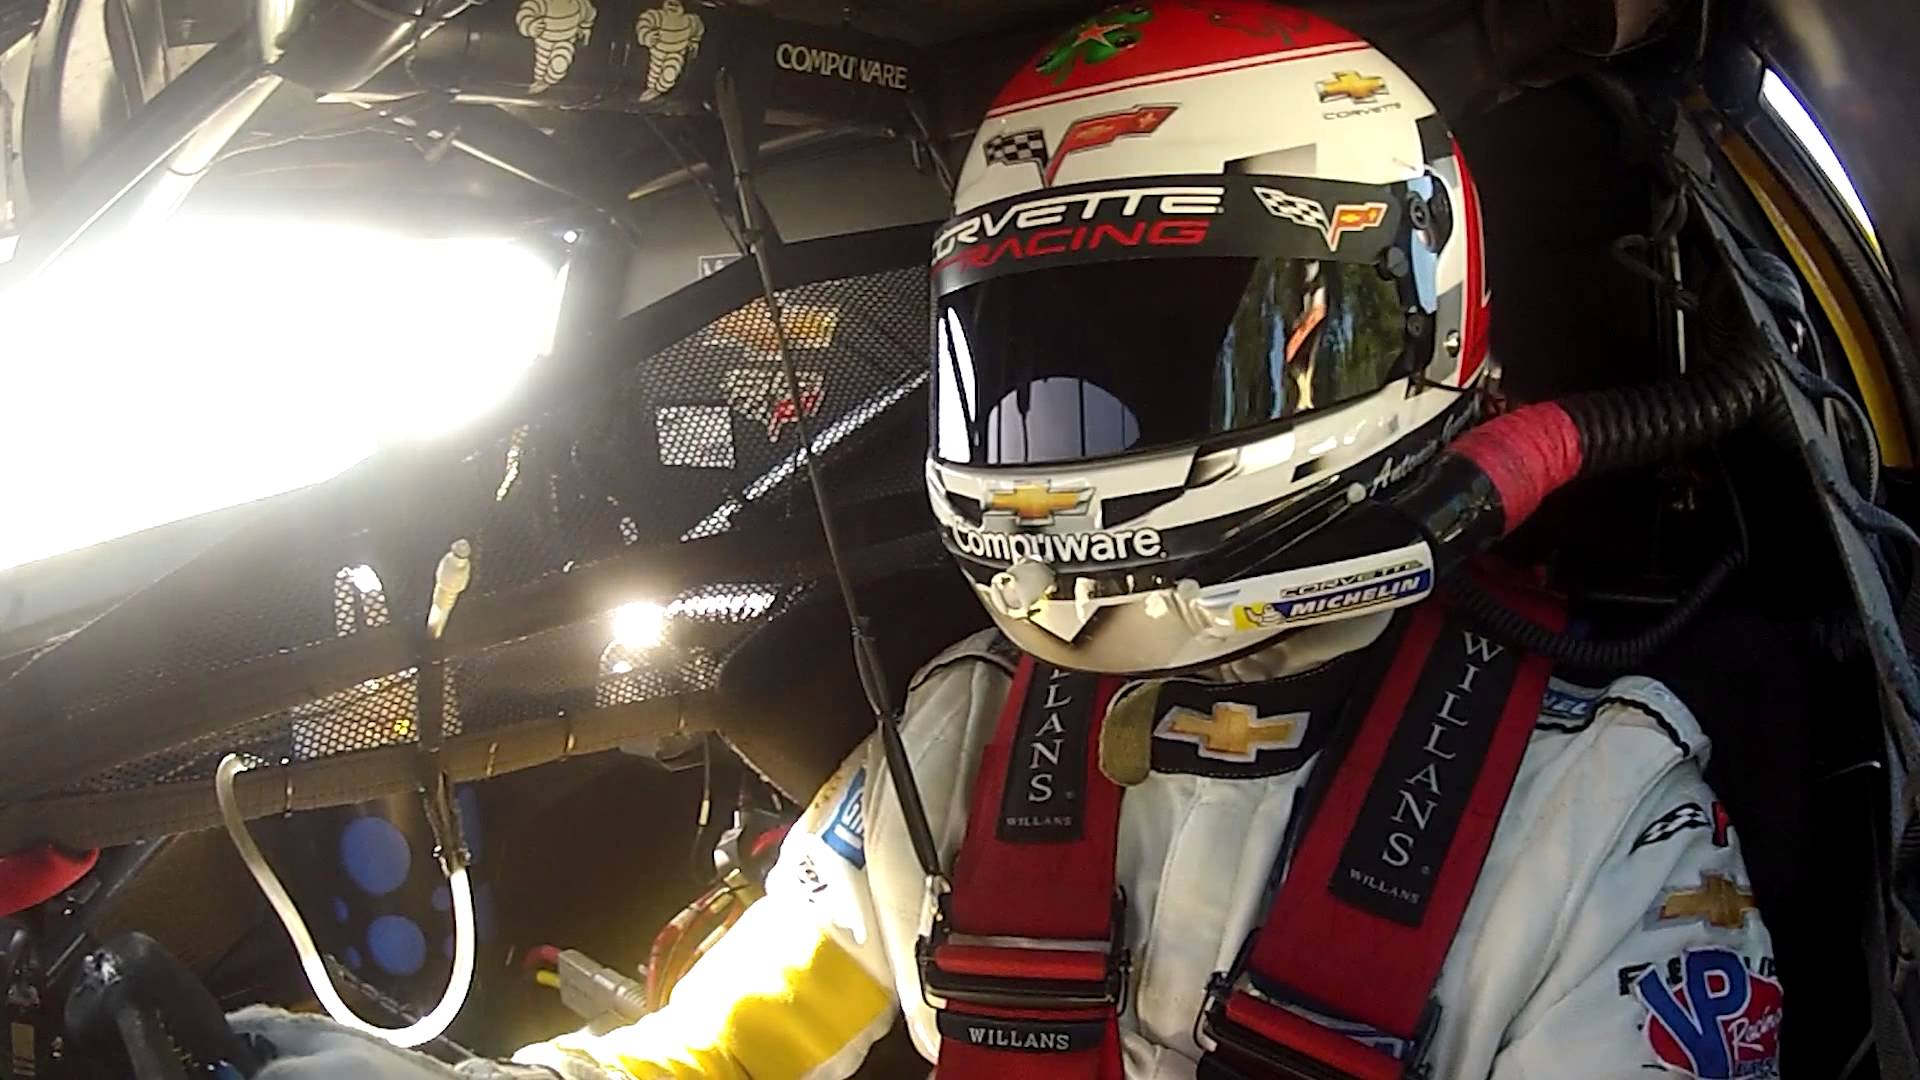 Corvette Racing – Flat Out – 2012 24 Hours of Le Mans (Episode 5 of 5)